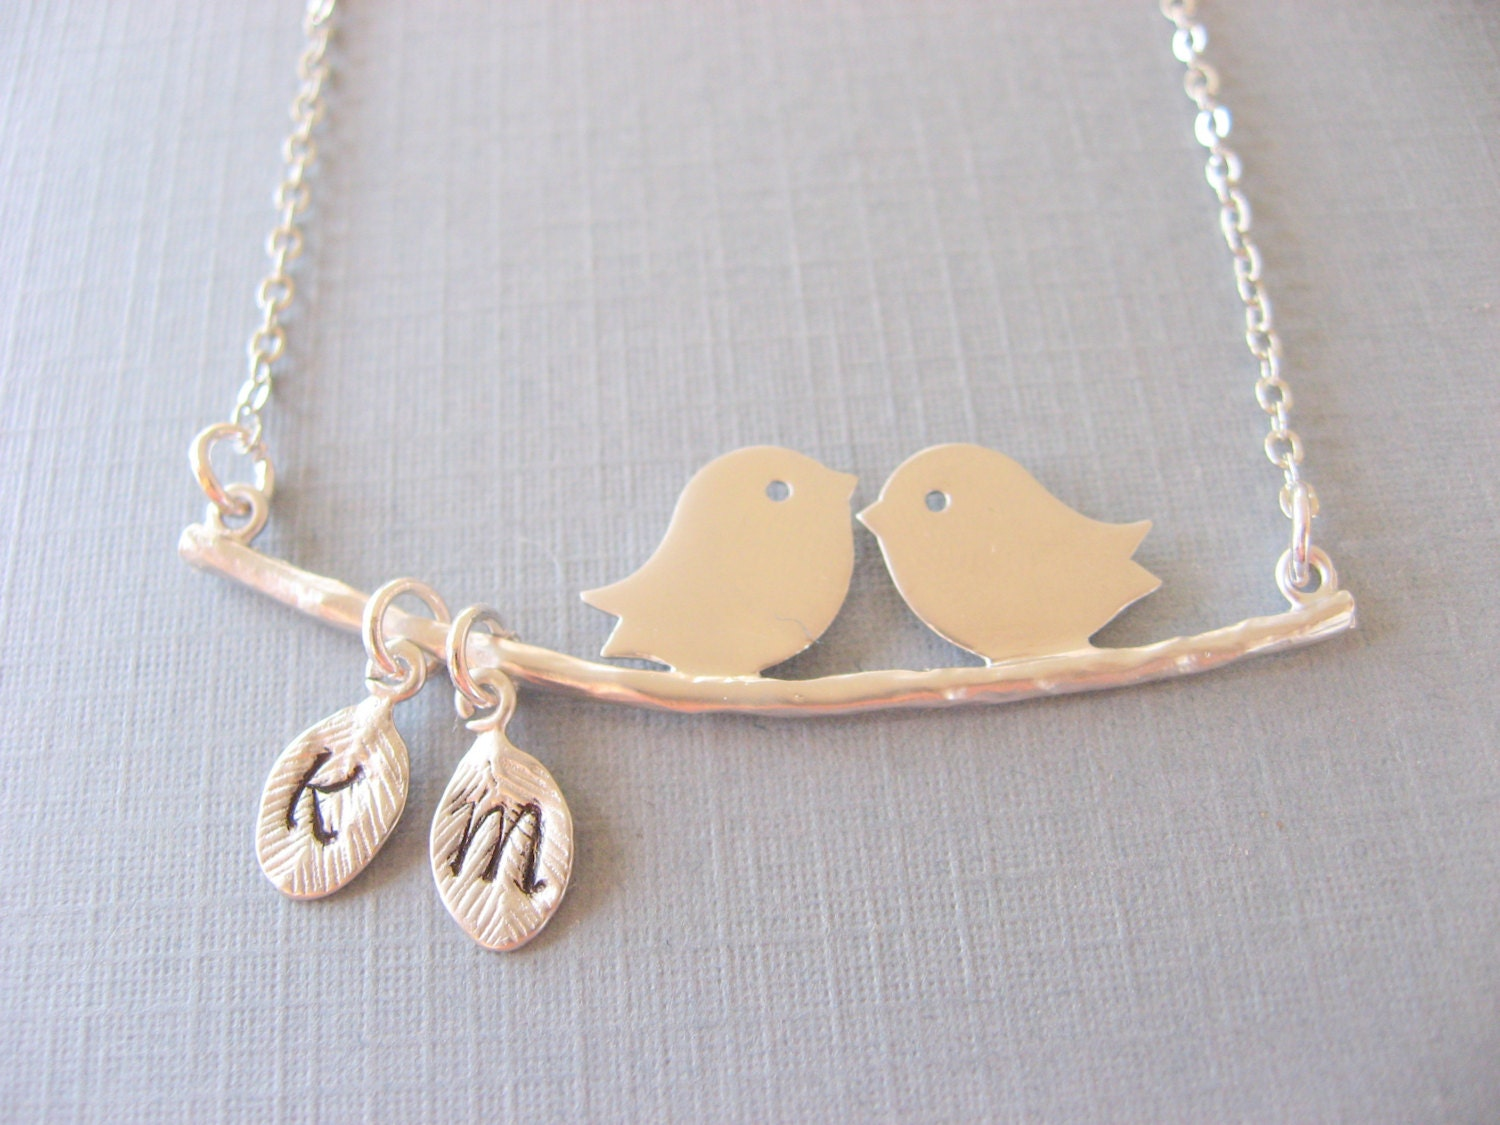 necklaces little daughter designs bird products mother emily set necklace jane